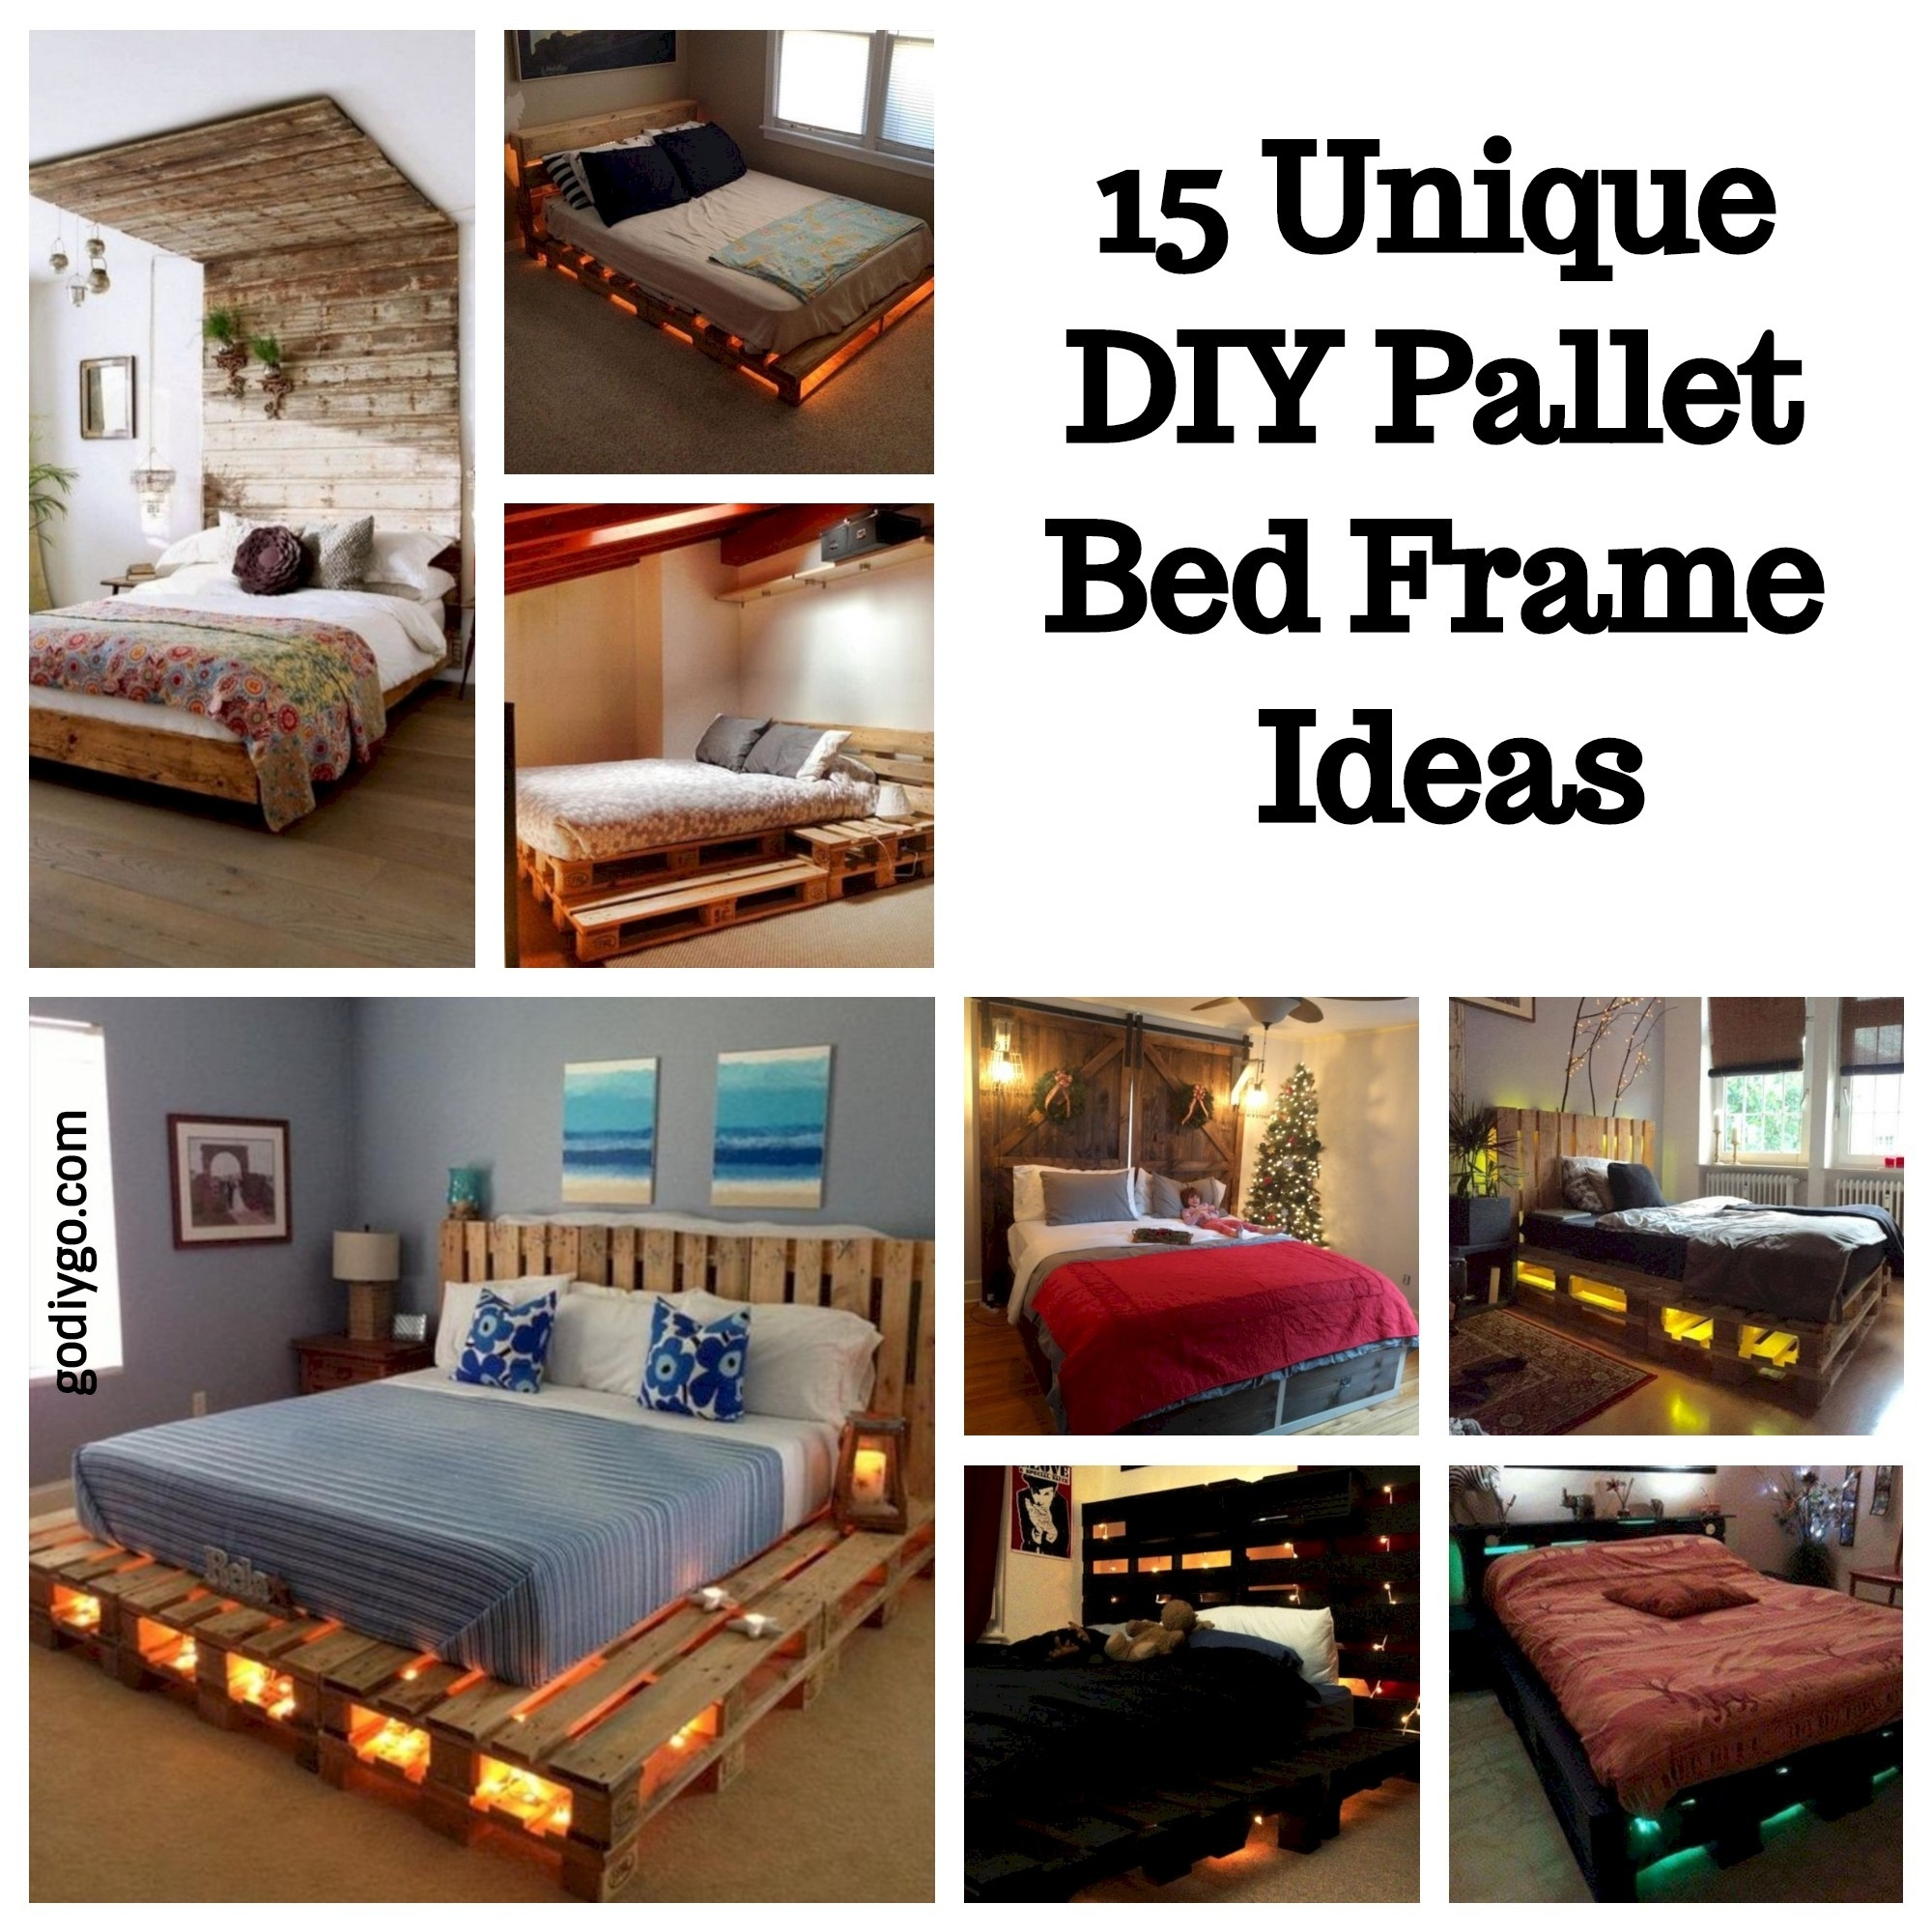 21 DIY Bed Frame Projects  Sleep in Style and Comfort